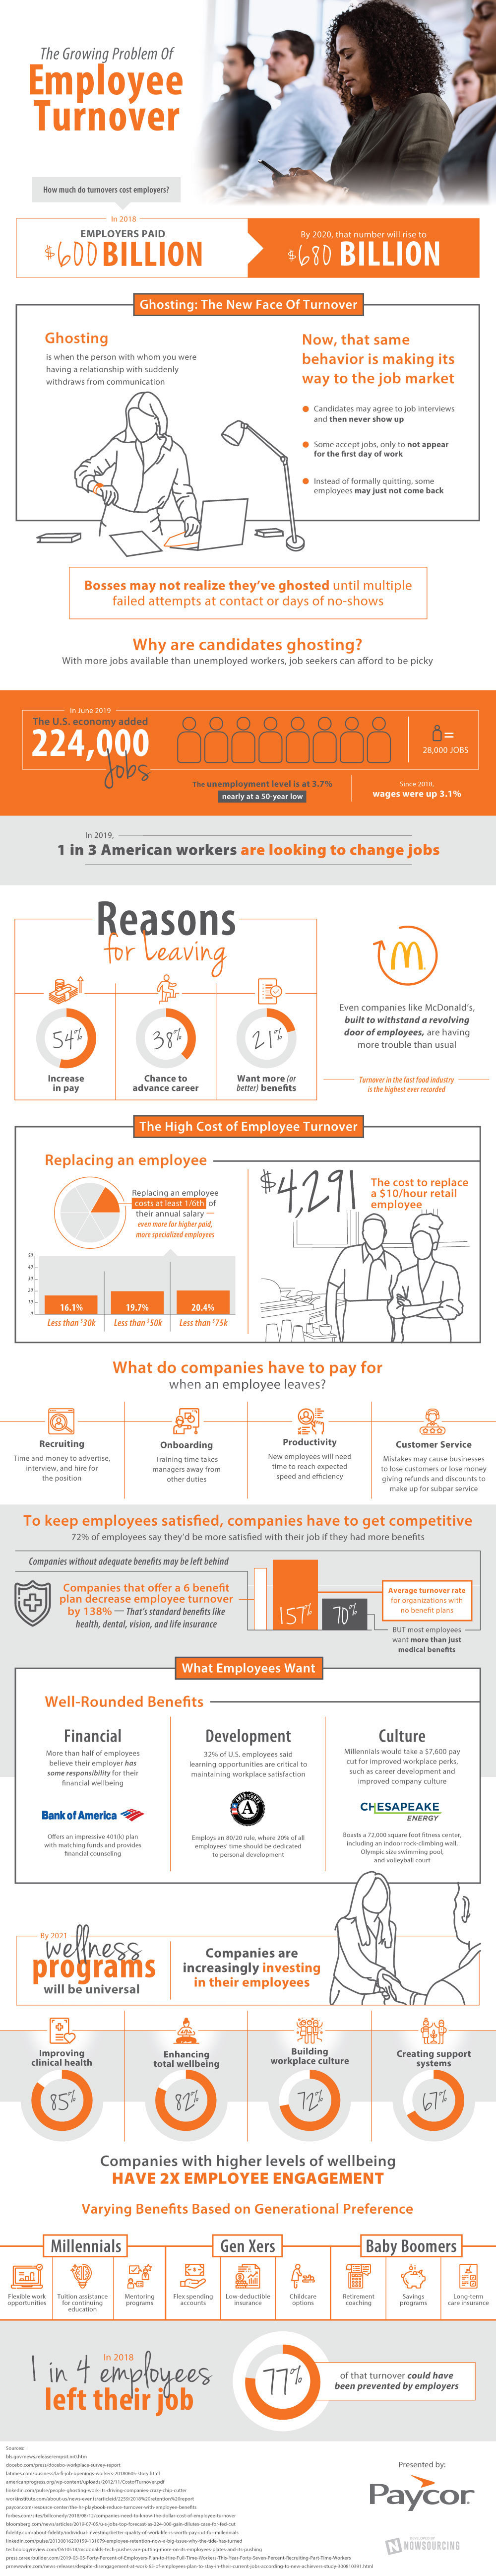 The Growing Problem Of Employee Turnover - Infographic